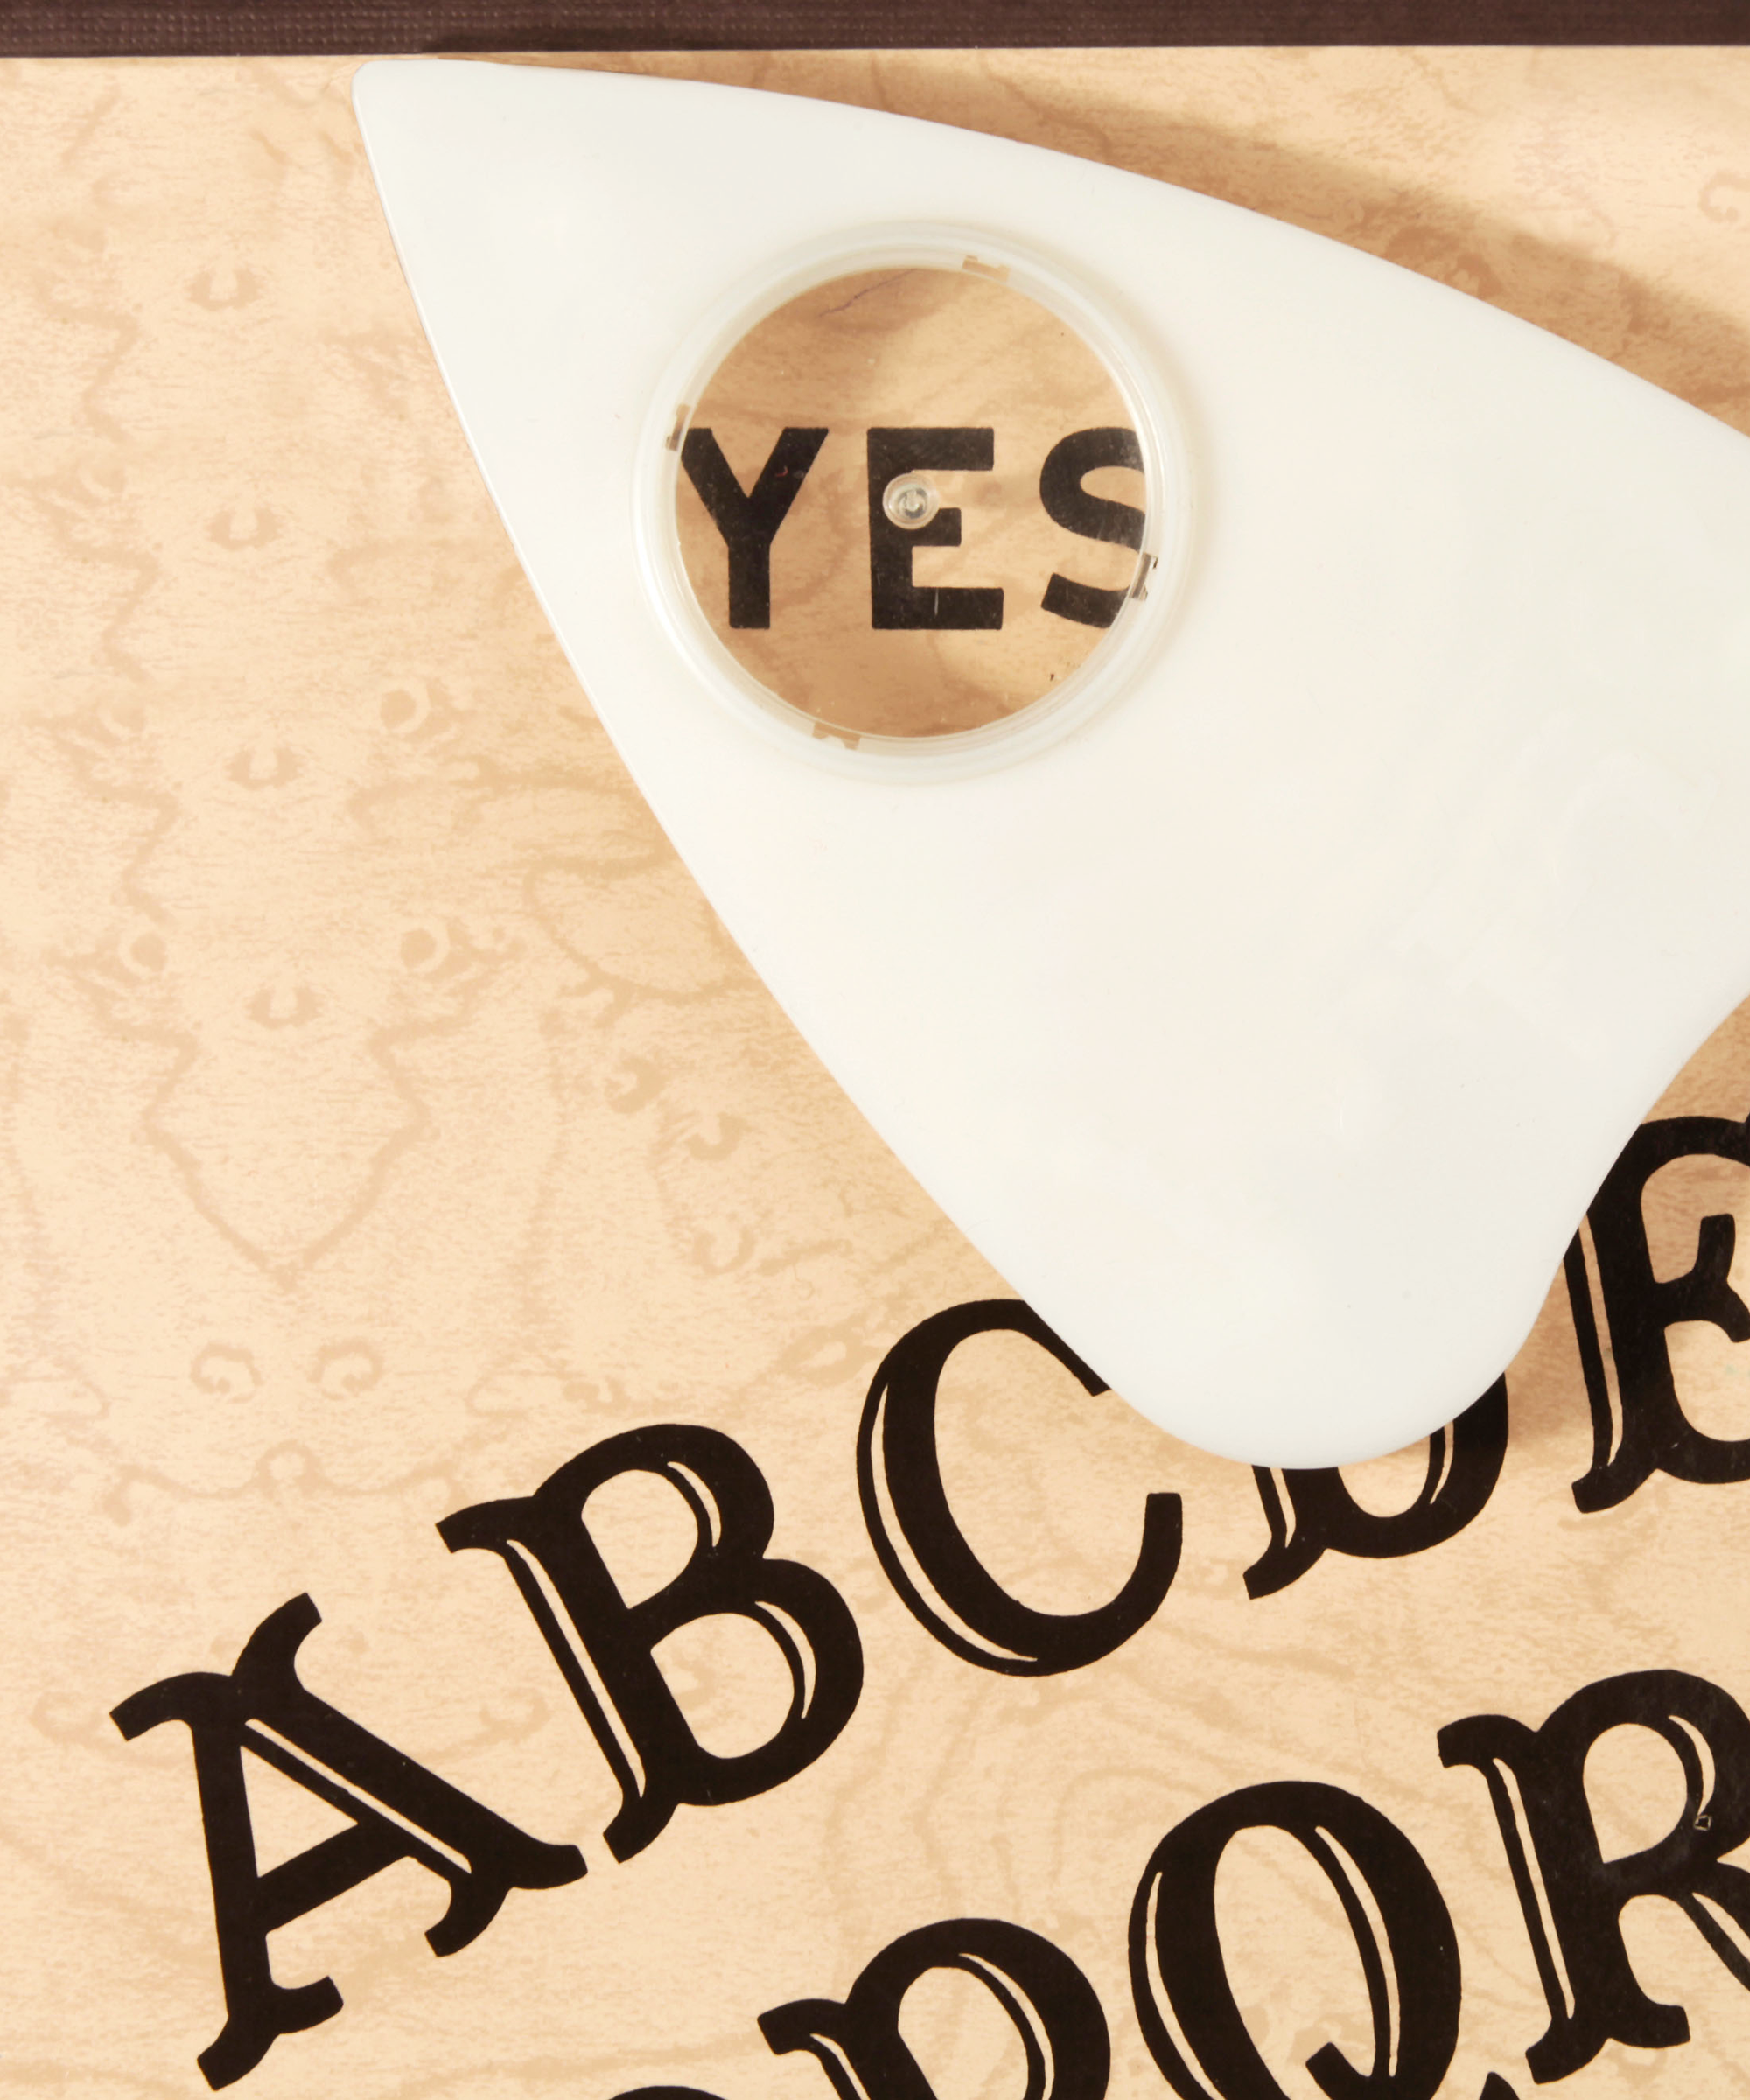 The bachelor ouija board rules how do they work buycottarizona Gallery